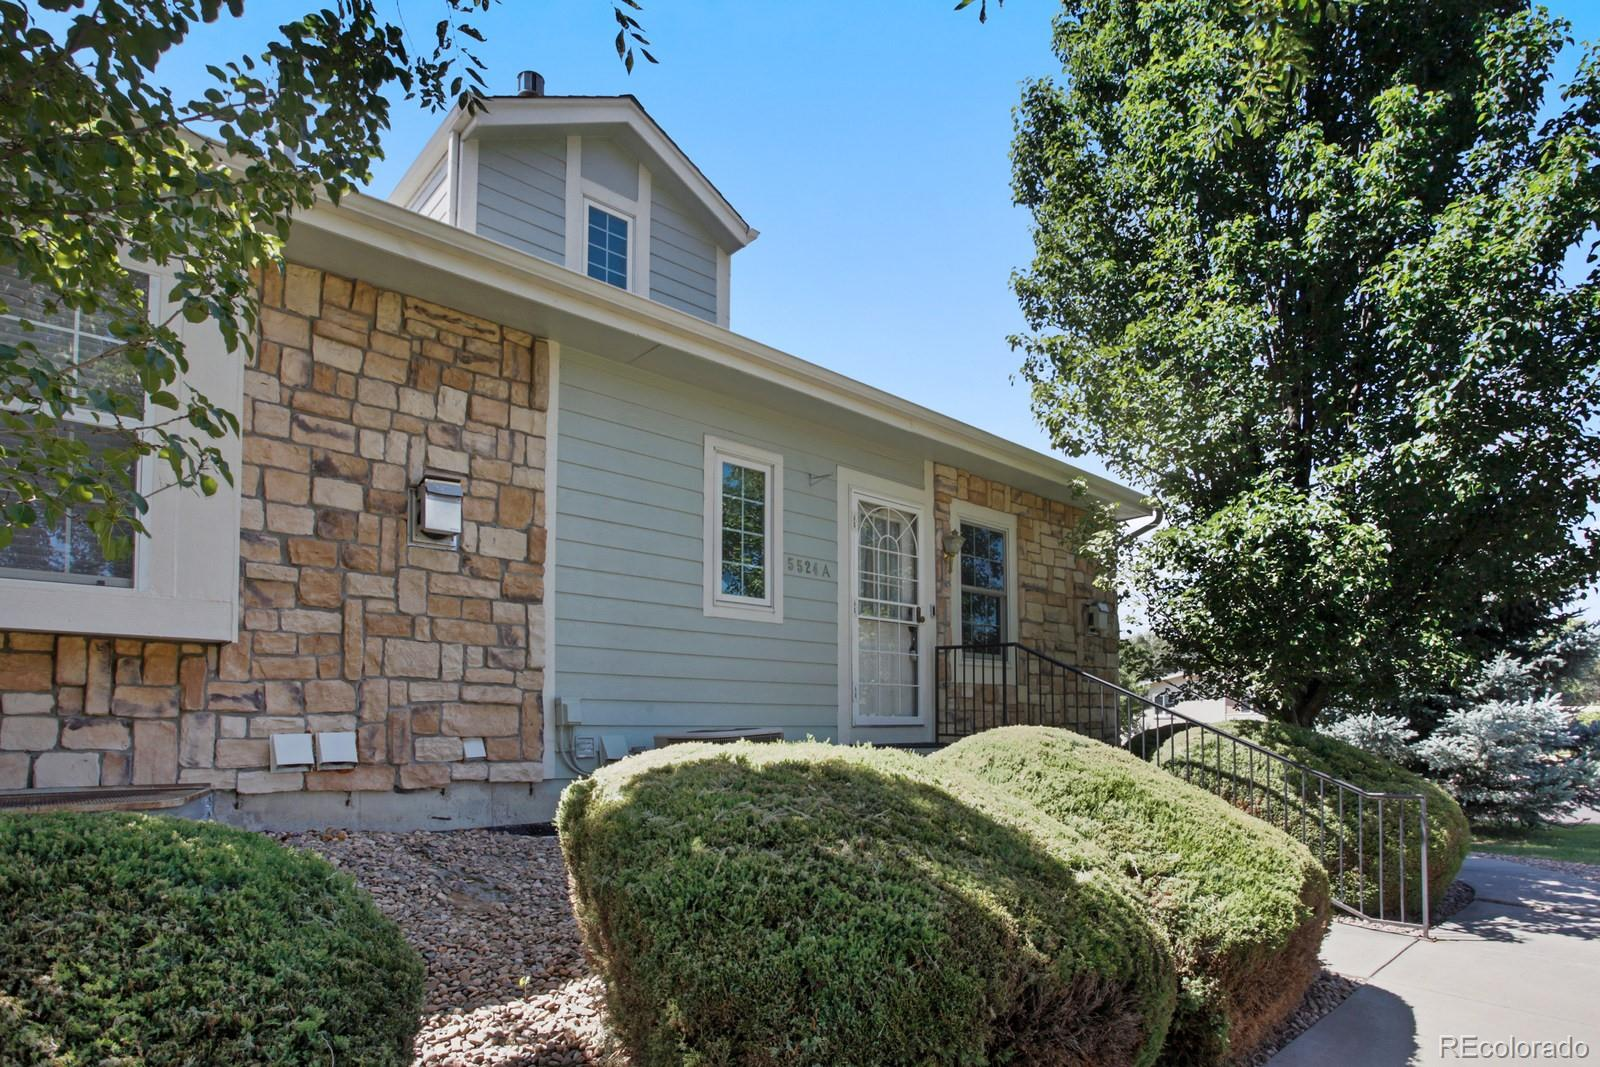 Dreaming of a spacious END UNIT that fronts to quiet open space & trails in a well maintained community.  Light, bright, open, neutral, and vaulted ceilings in the living room with a cozy fireplace. Just off the kitchen is balcony deck with Mountain views. Main floor master bedroom with full size bathroom. Walk upstairs to a bright 2nd  Bedroom with a full size bathroom and find additional storage off the top of the stairs! From the kitchen area head downstairs to a custom built wet bar for entertaining.  Spacious 2 car garage and extra guest parking!  This townhome is 3 levels  with 1311 sqft.  Newer Anderson Windows with 14 yr warranty - double pane/silver coating .  New paint, newer floors. Home is hard wired internet -Cat 5. Millbrook is a cozy little community in Columbine Hills. The quaint community is complete with a private pool , clubhouse. Ideal location just minutes to C470 near Chatfield Reservoir, Santa Fe, Light Rail, Aspen Grove Shopping Center, Downtown Littleton, S. Platte Reservoir, & easy access for a mountain getaway.  This is your chance to call this your home!